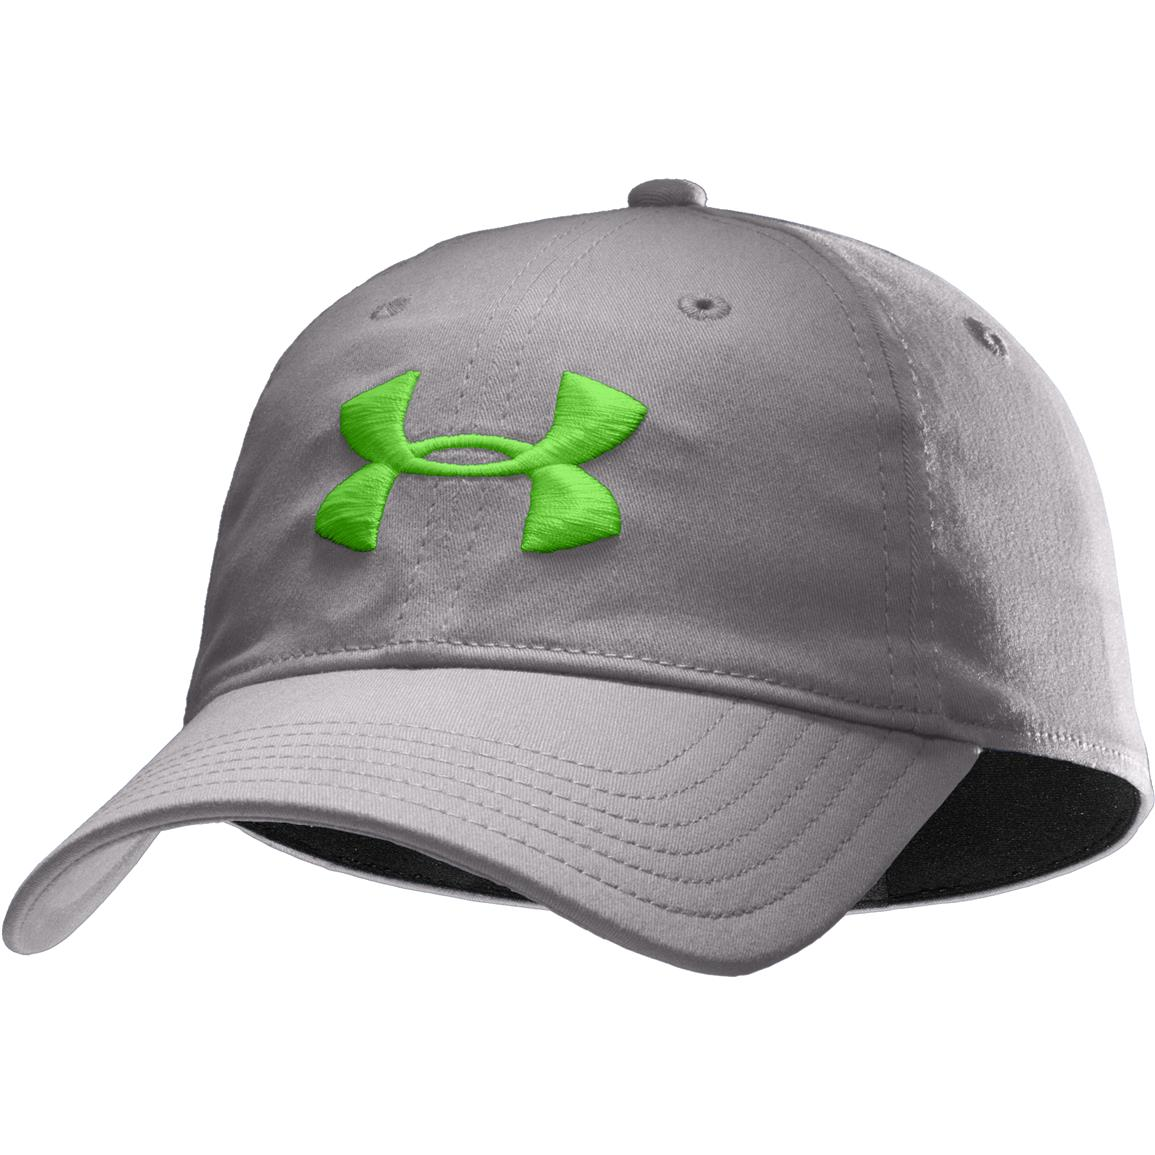 Under Armour Classic Outdoor Hat, Storm / Gecko